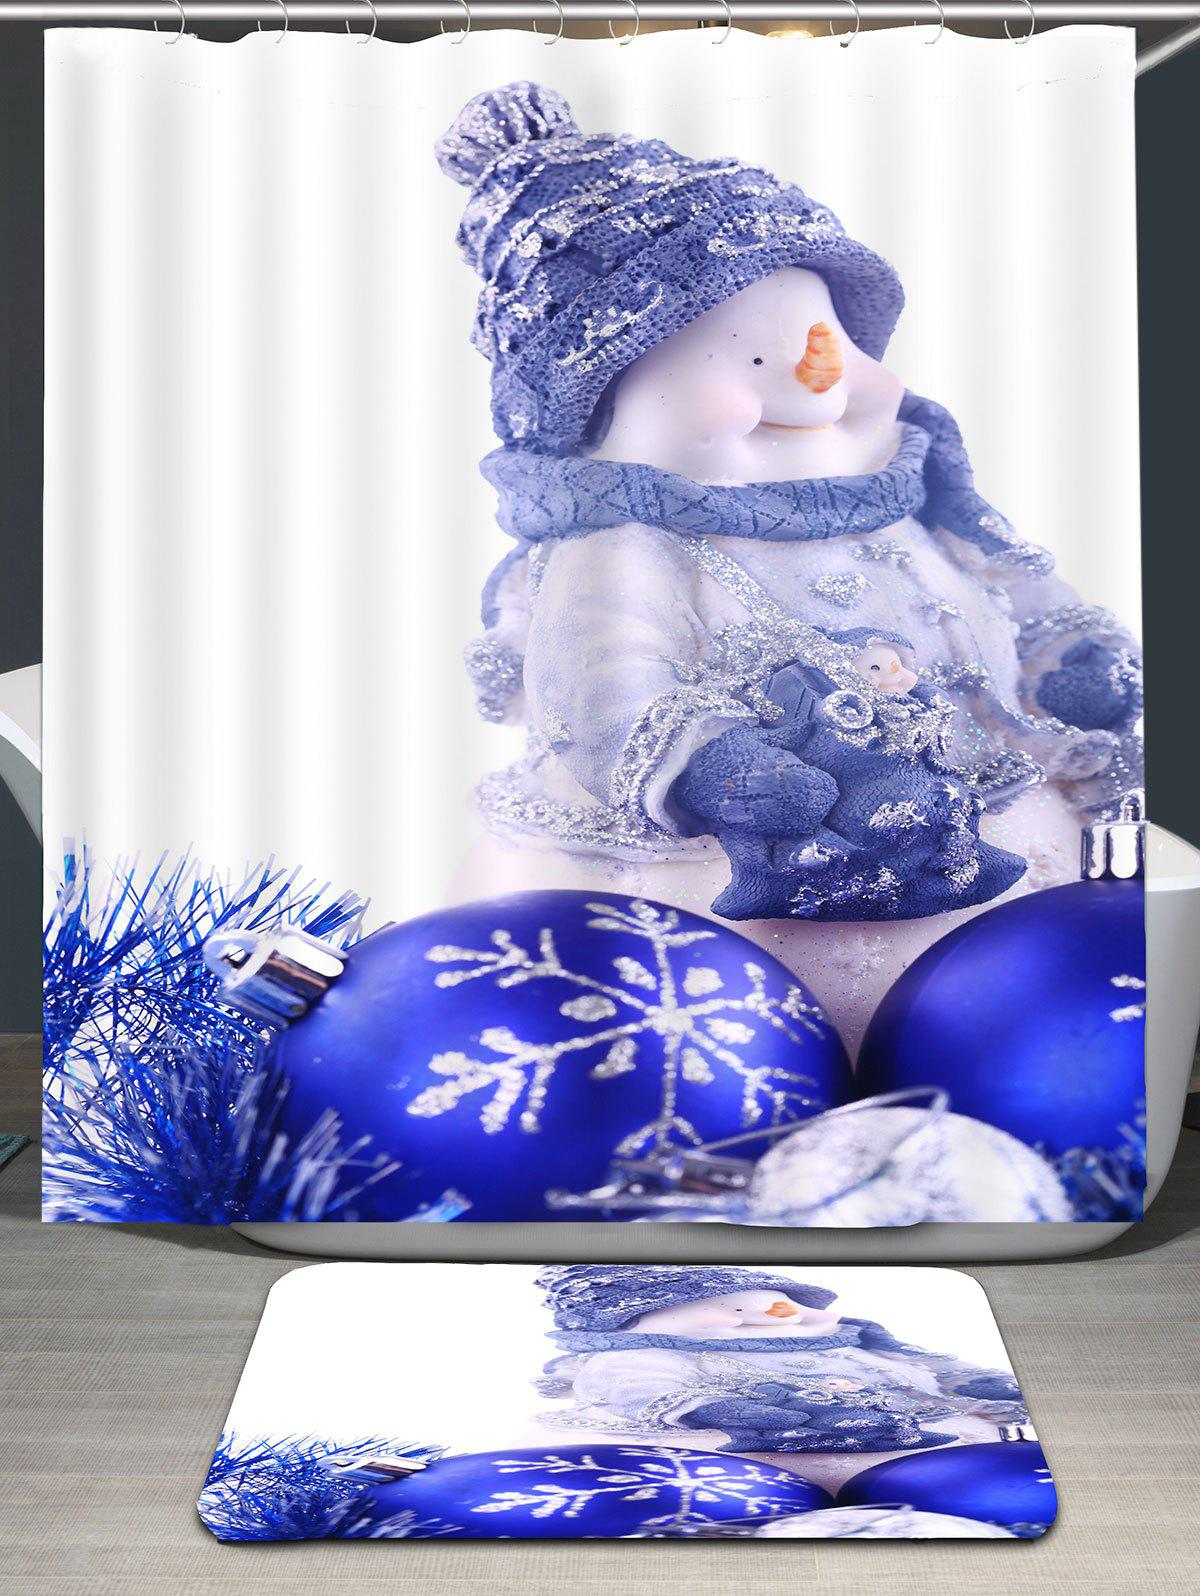 Christmas Snowman Balls Print Waterproof Shower Curtain - BLUE W59 INCH * L71 INCH